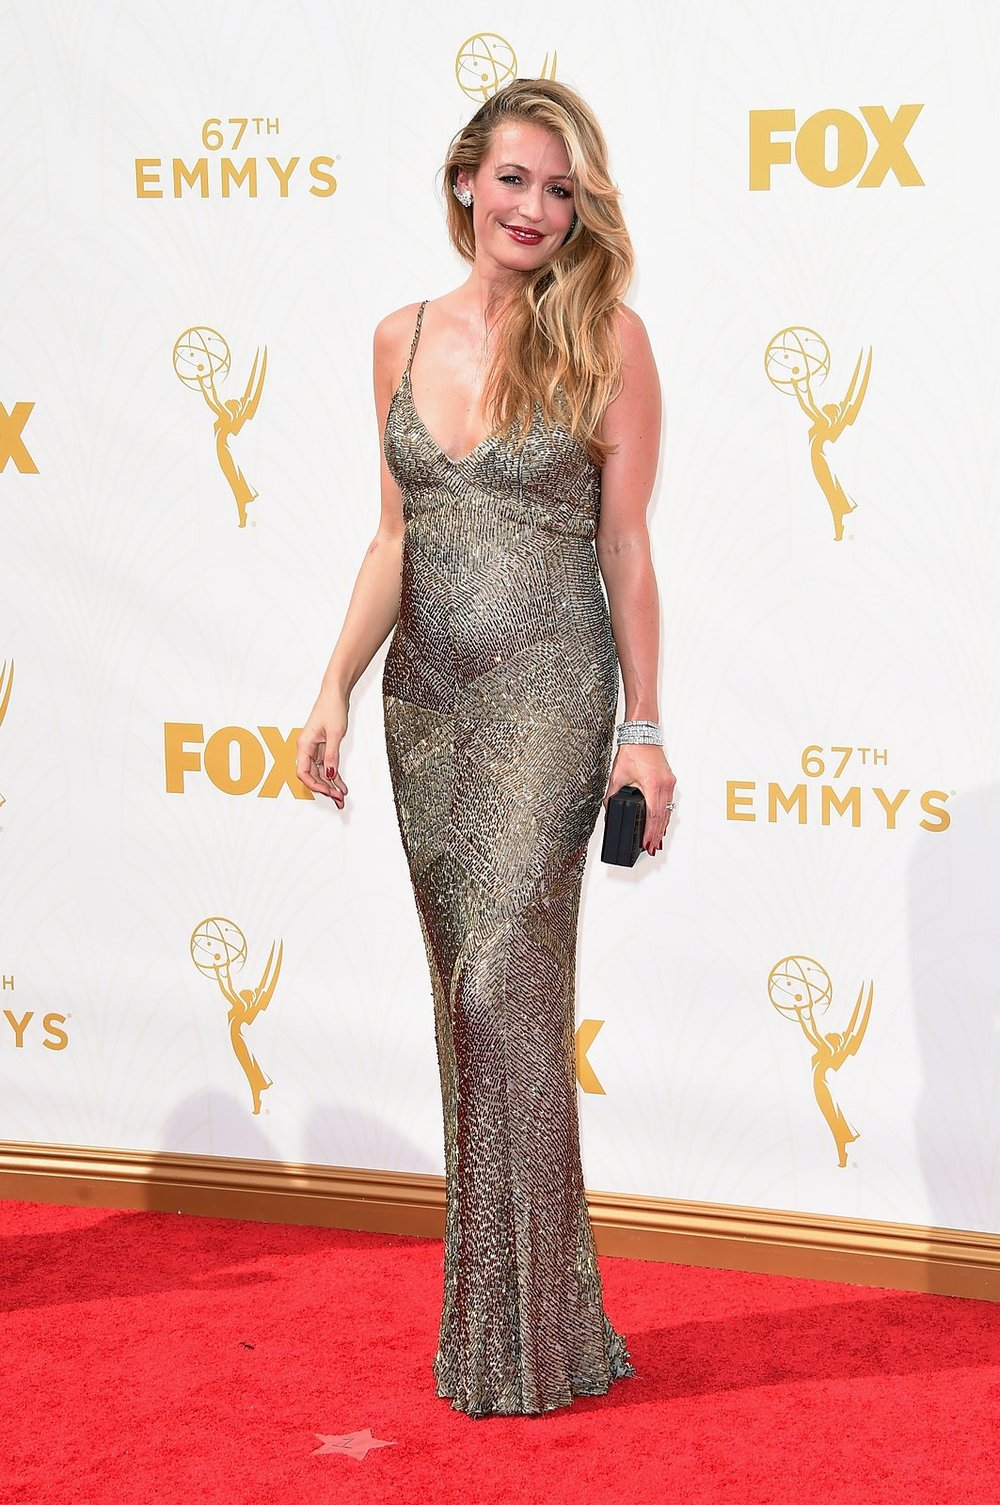 cat-deeley-emmys-red-carpet-2015.jpg